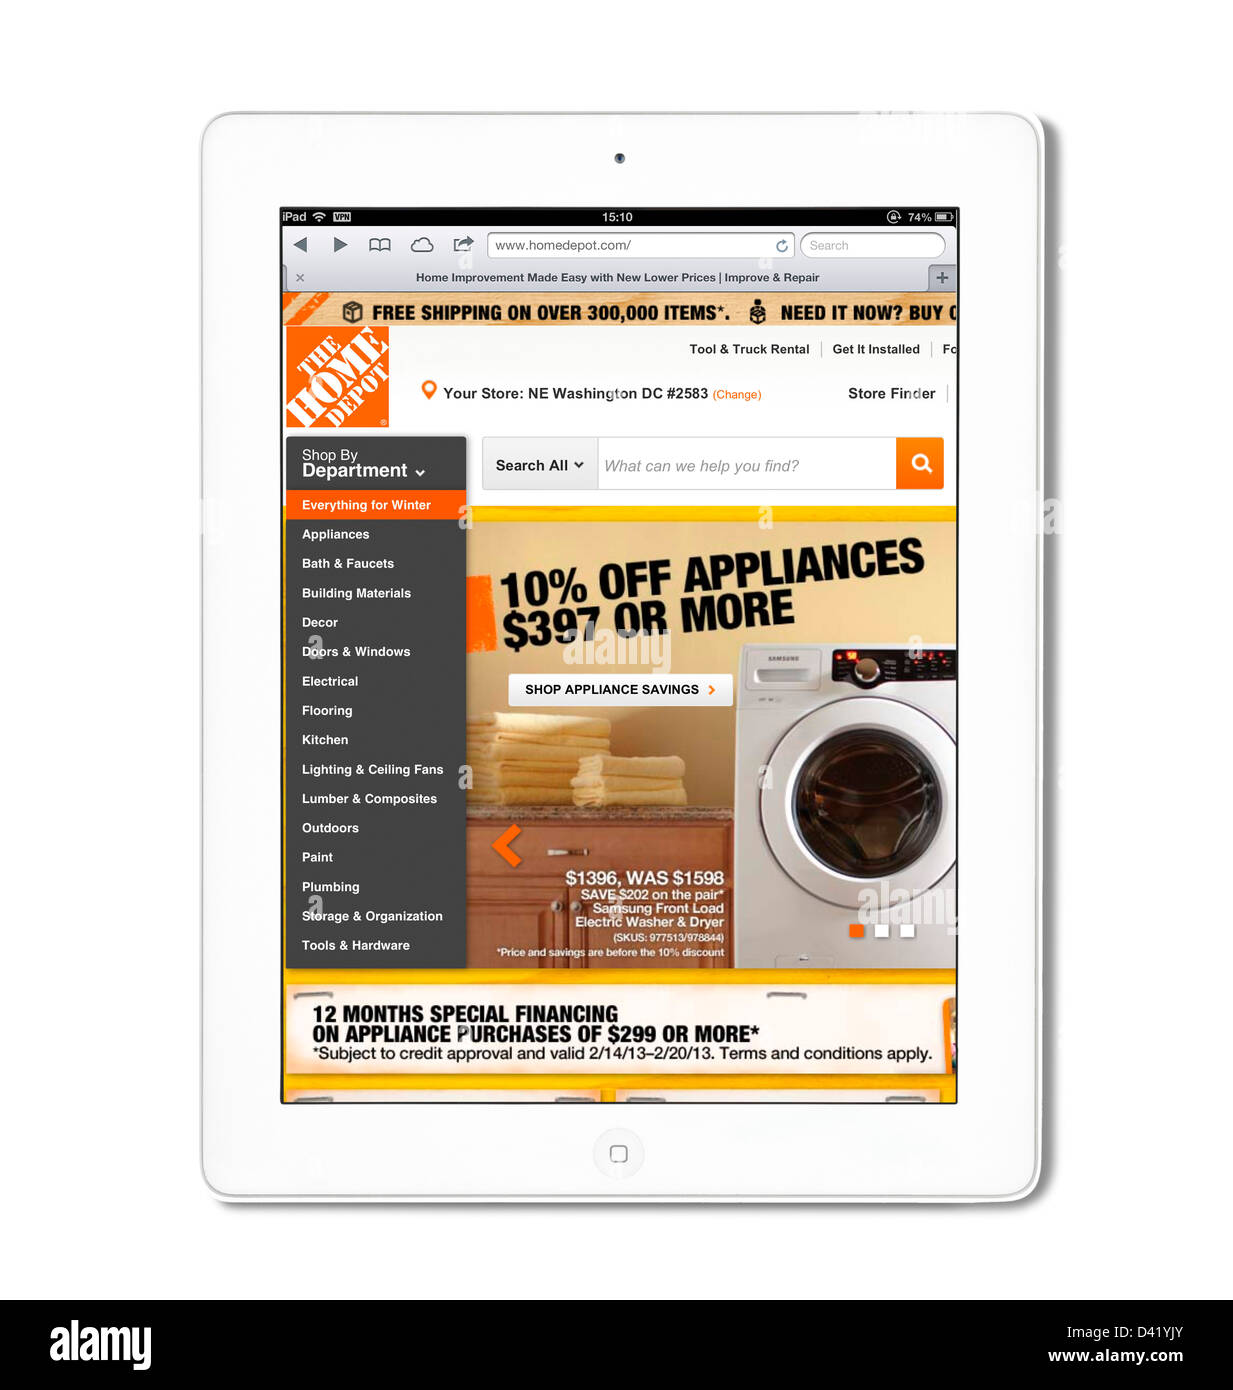 Online shopping website of The Home Depot, viewed on an iPad 4, USA - Stock Image